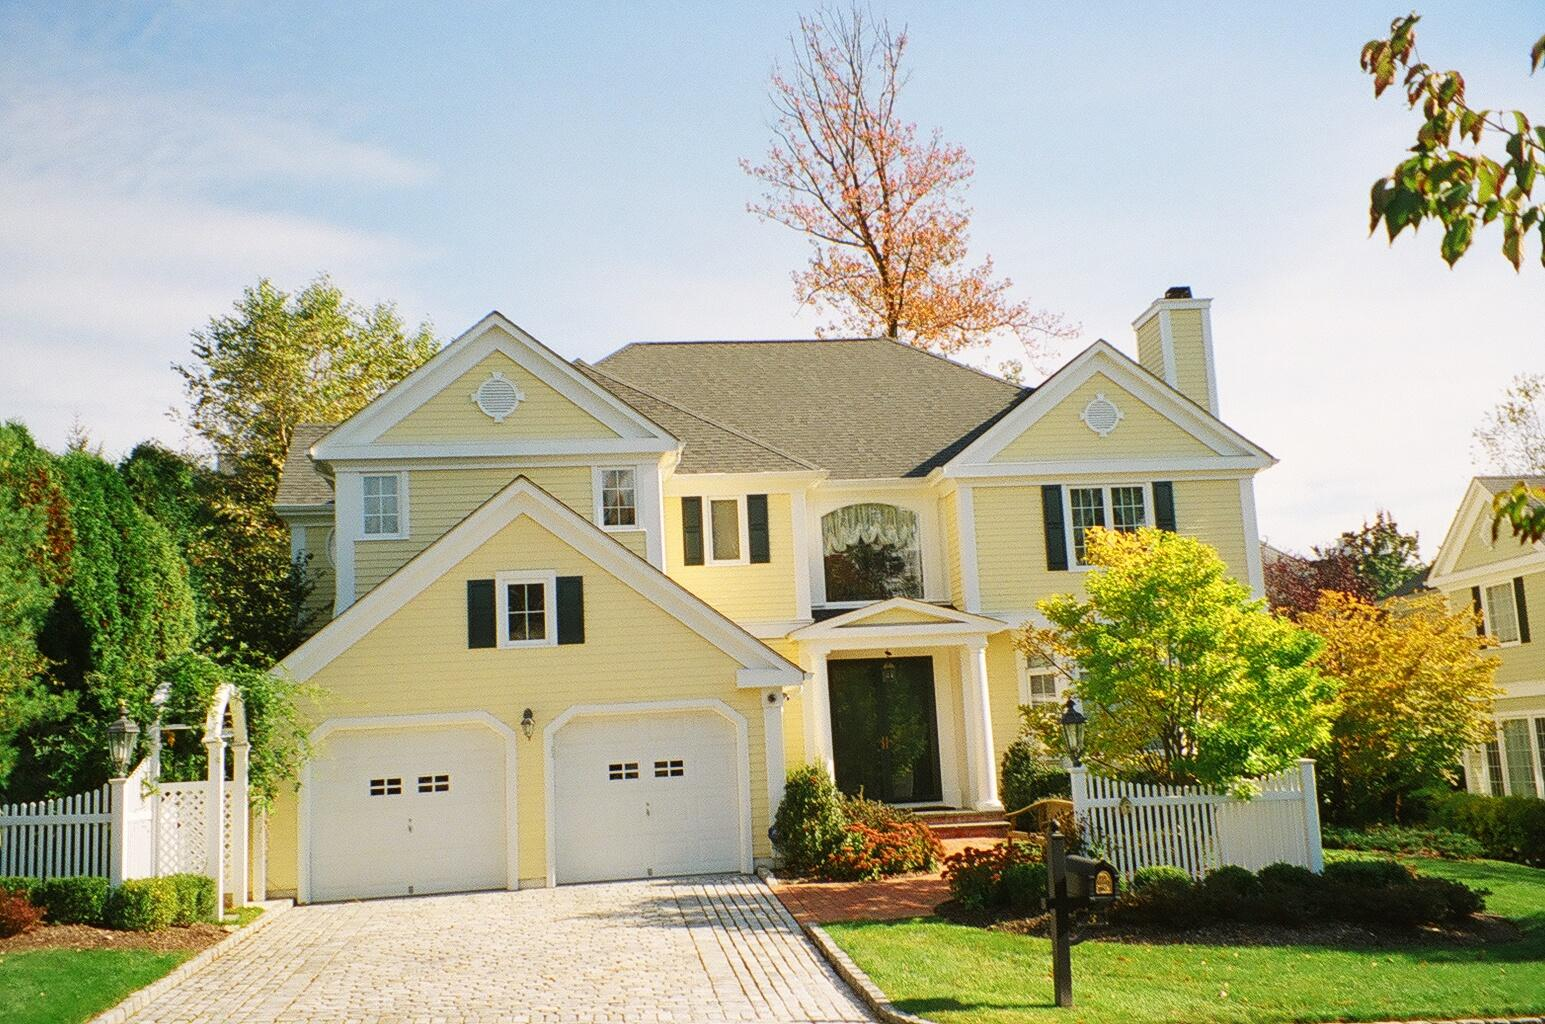 Remove the dullness and uninteresting outlooks in your for Painting house exterior ideas